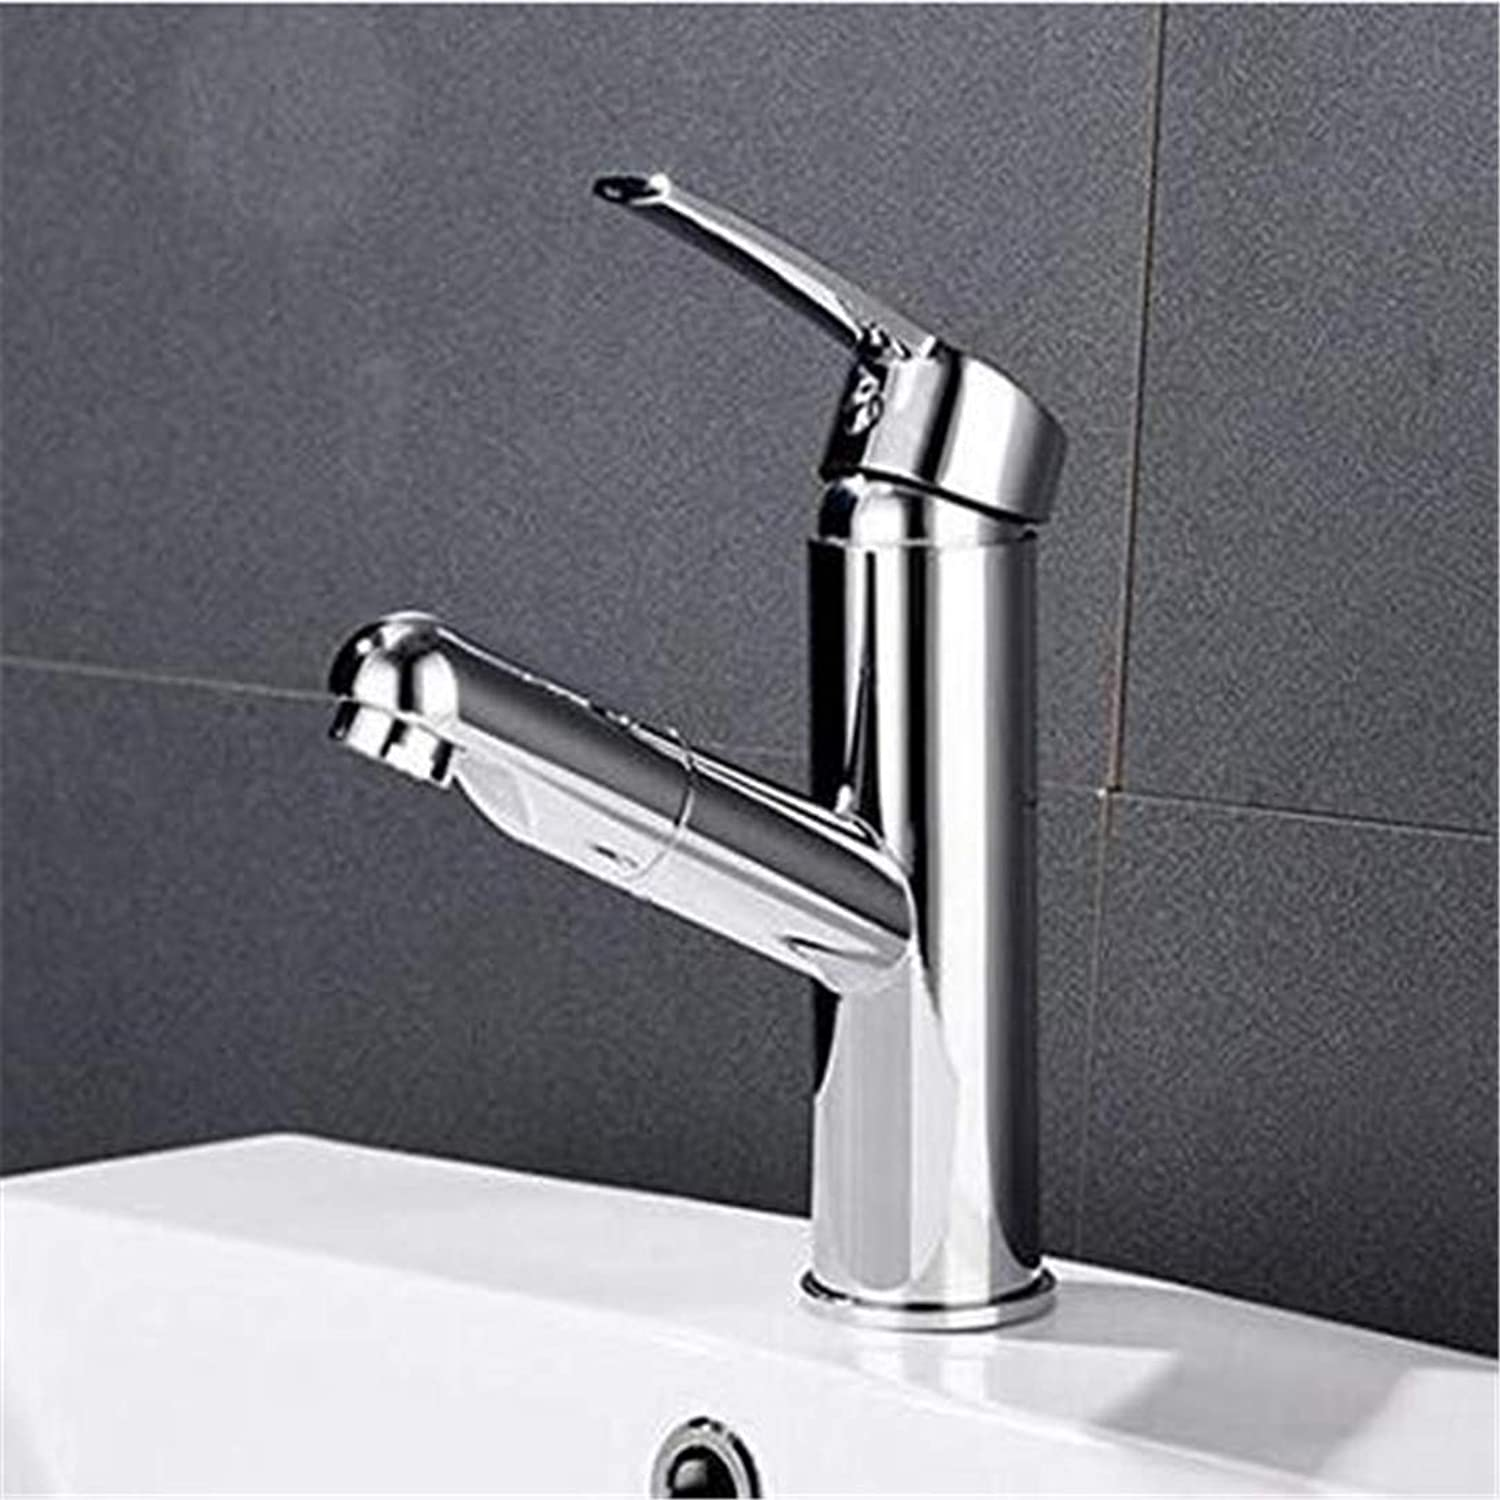 Sink Faucet Modern Home Kitchen and Bathroom Sink Taps Copper Pull Faucet Hot and Cold Single Hole Basin Faucet